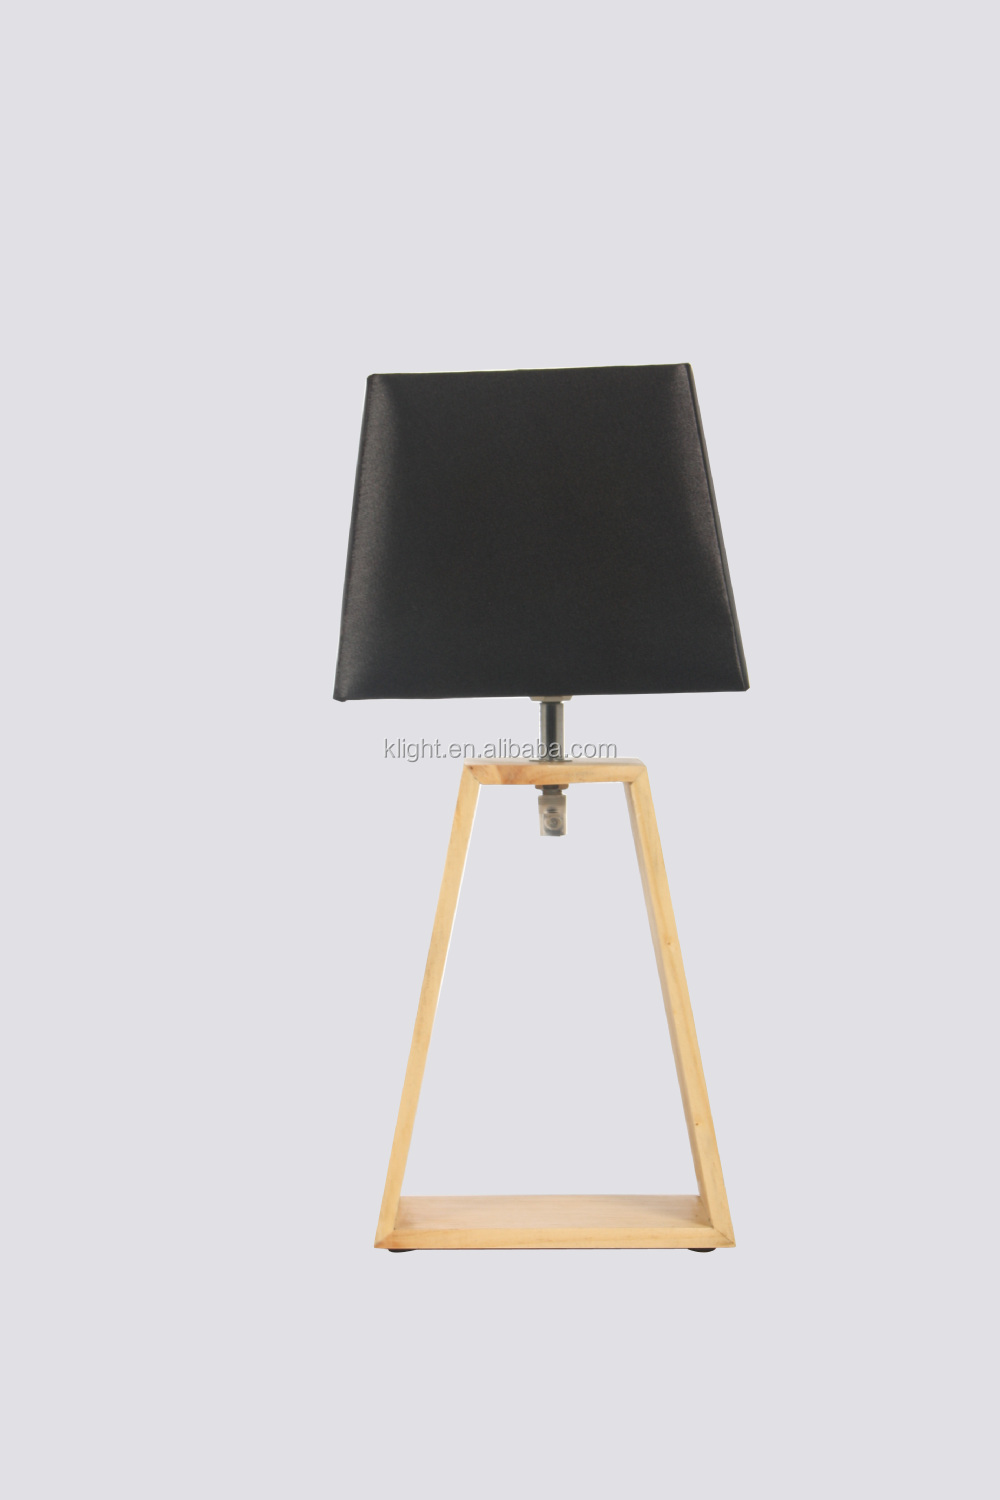 Wood Table Lamp,Trapezoid Wood Base And Fabric Lampshade